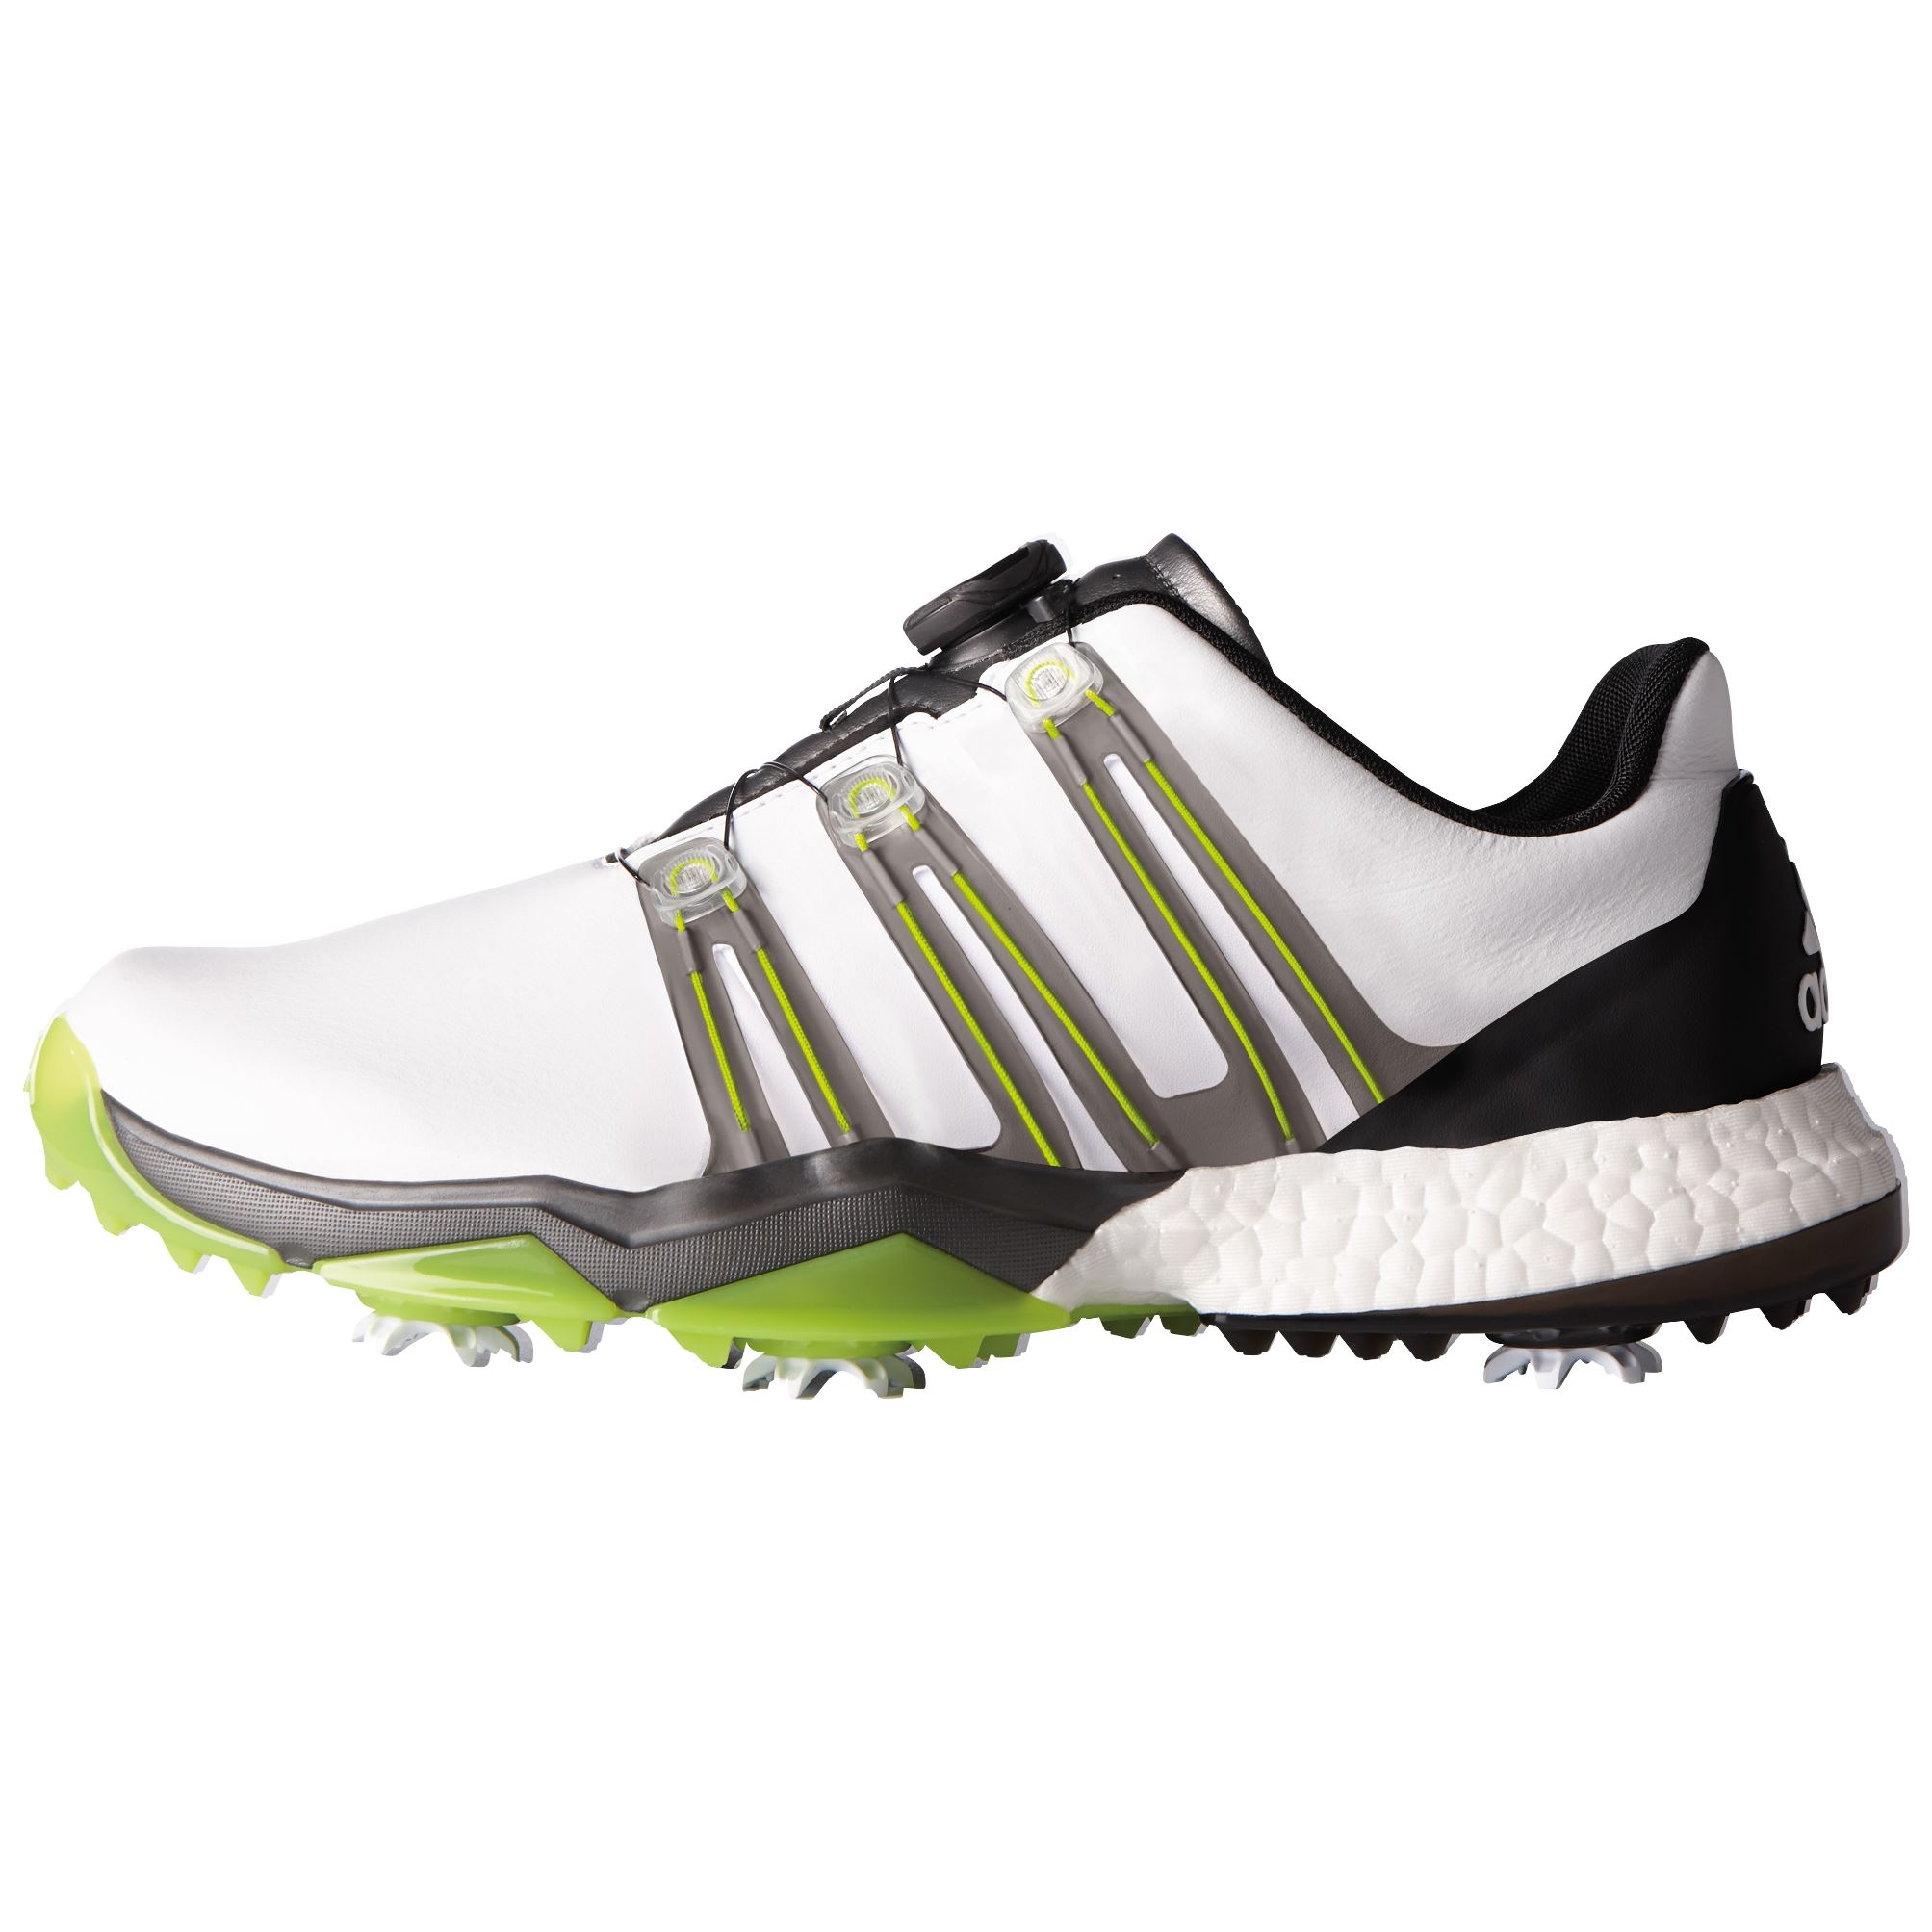 cc93a101dd4096 Adidas Powerband BOA Boost Shoes (Closeout)